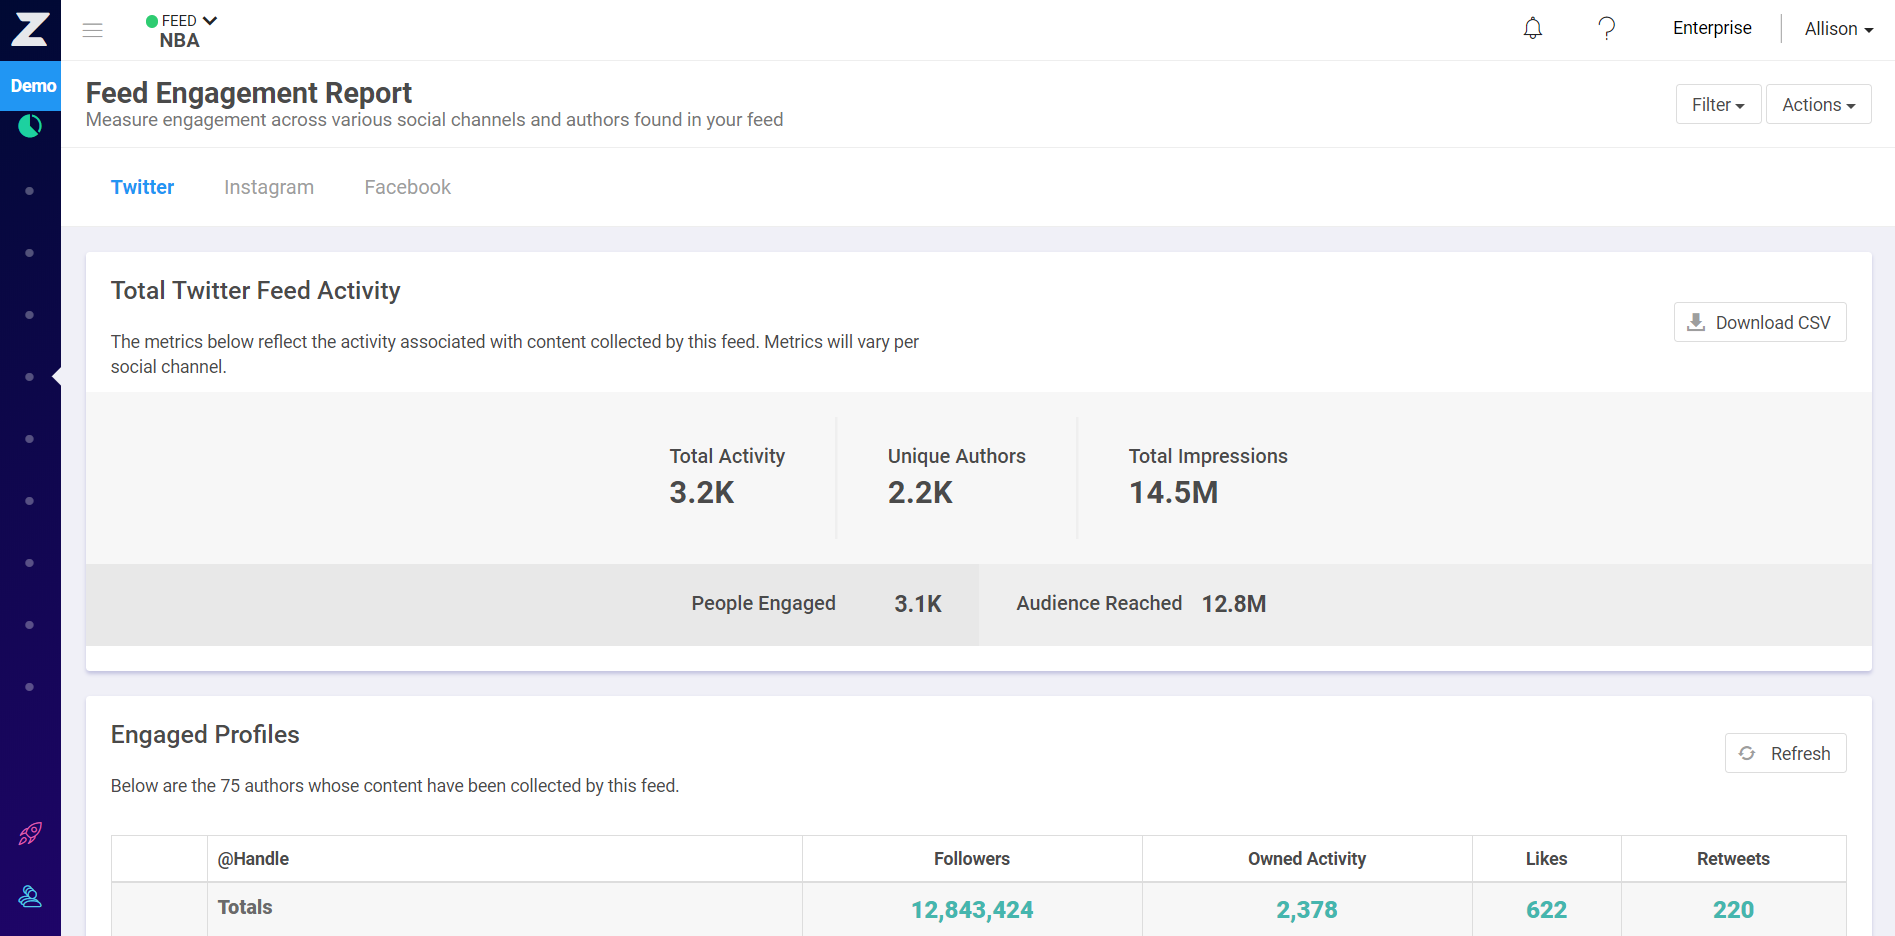 Feed engagement report